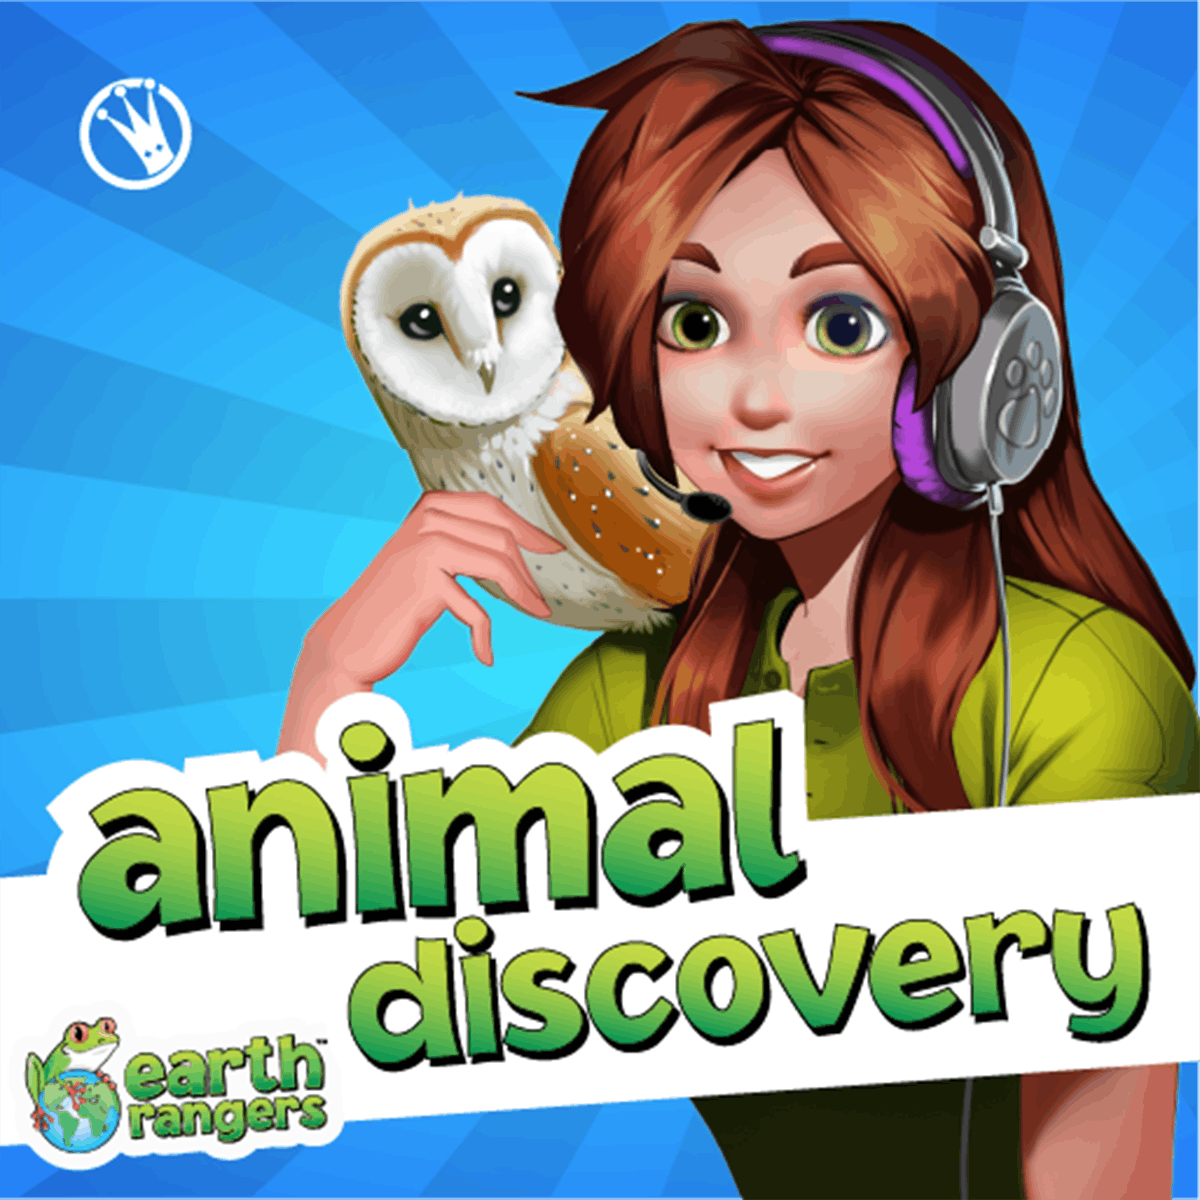 Learn about amazing animals with Earth Rangers